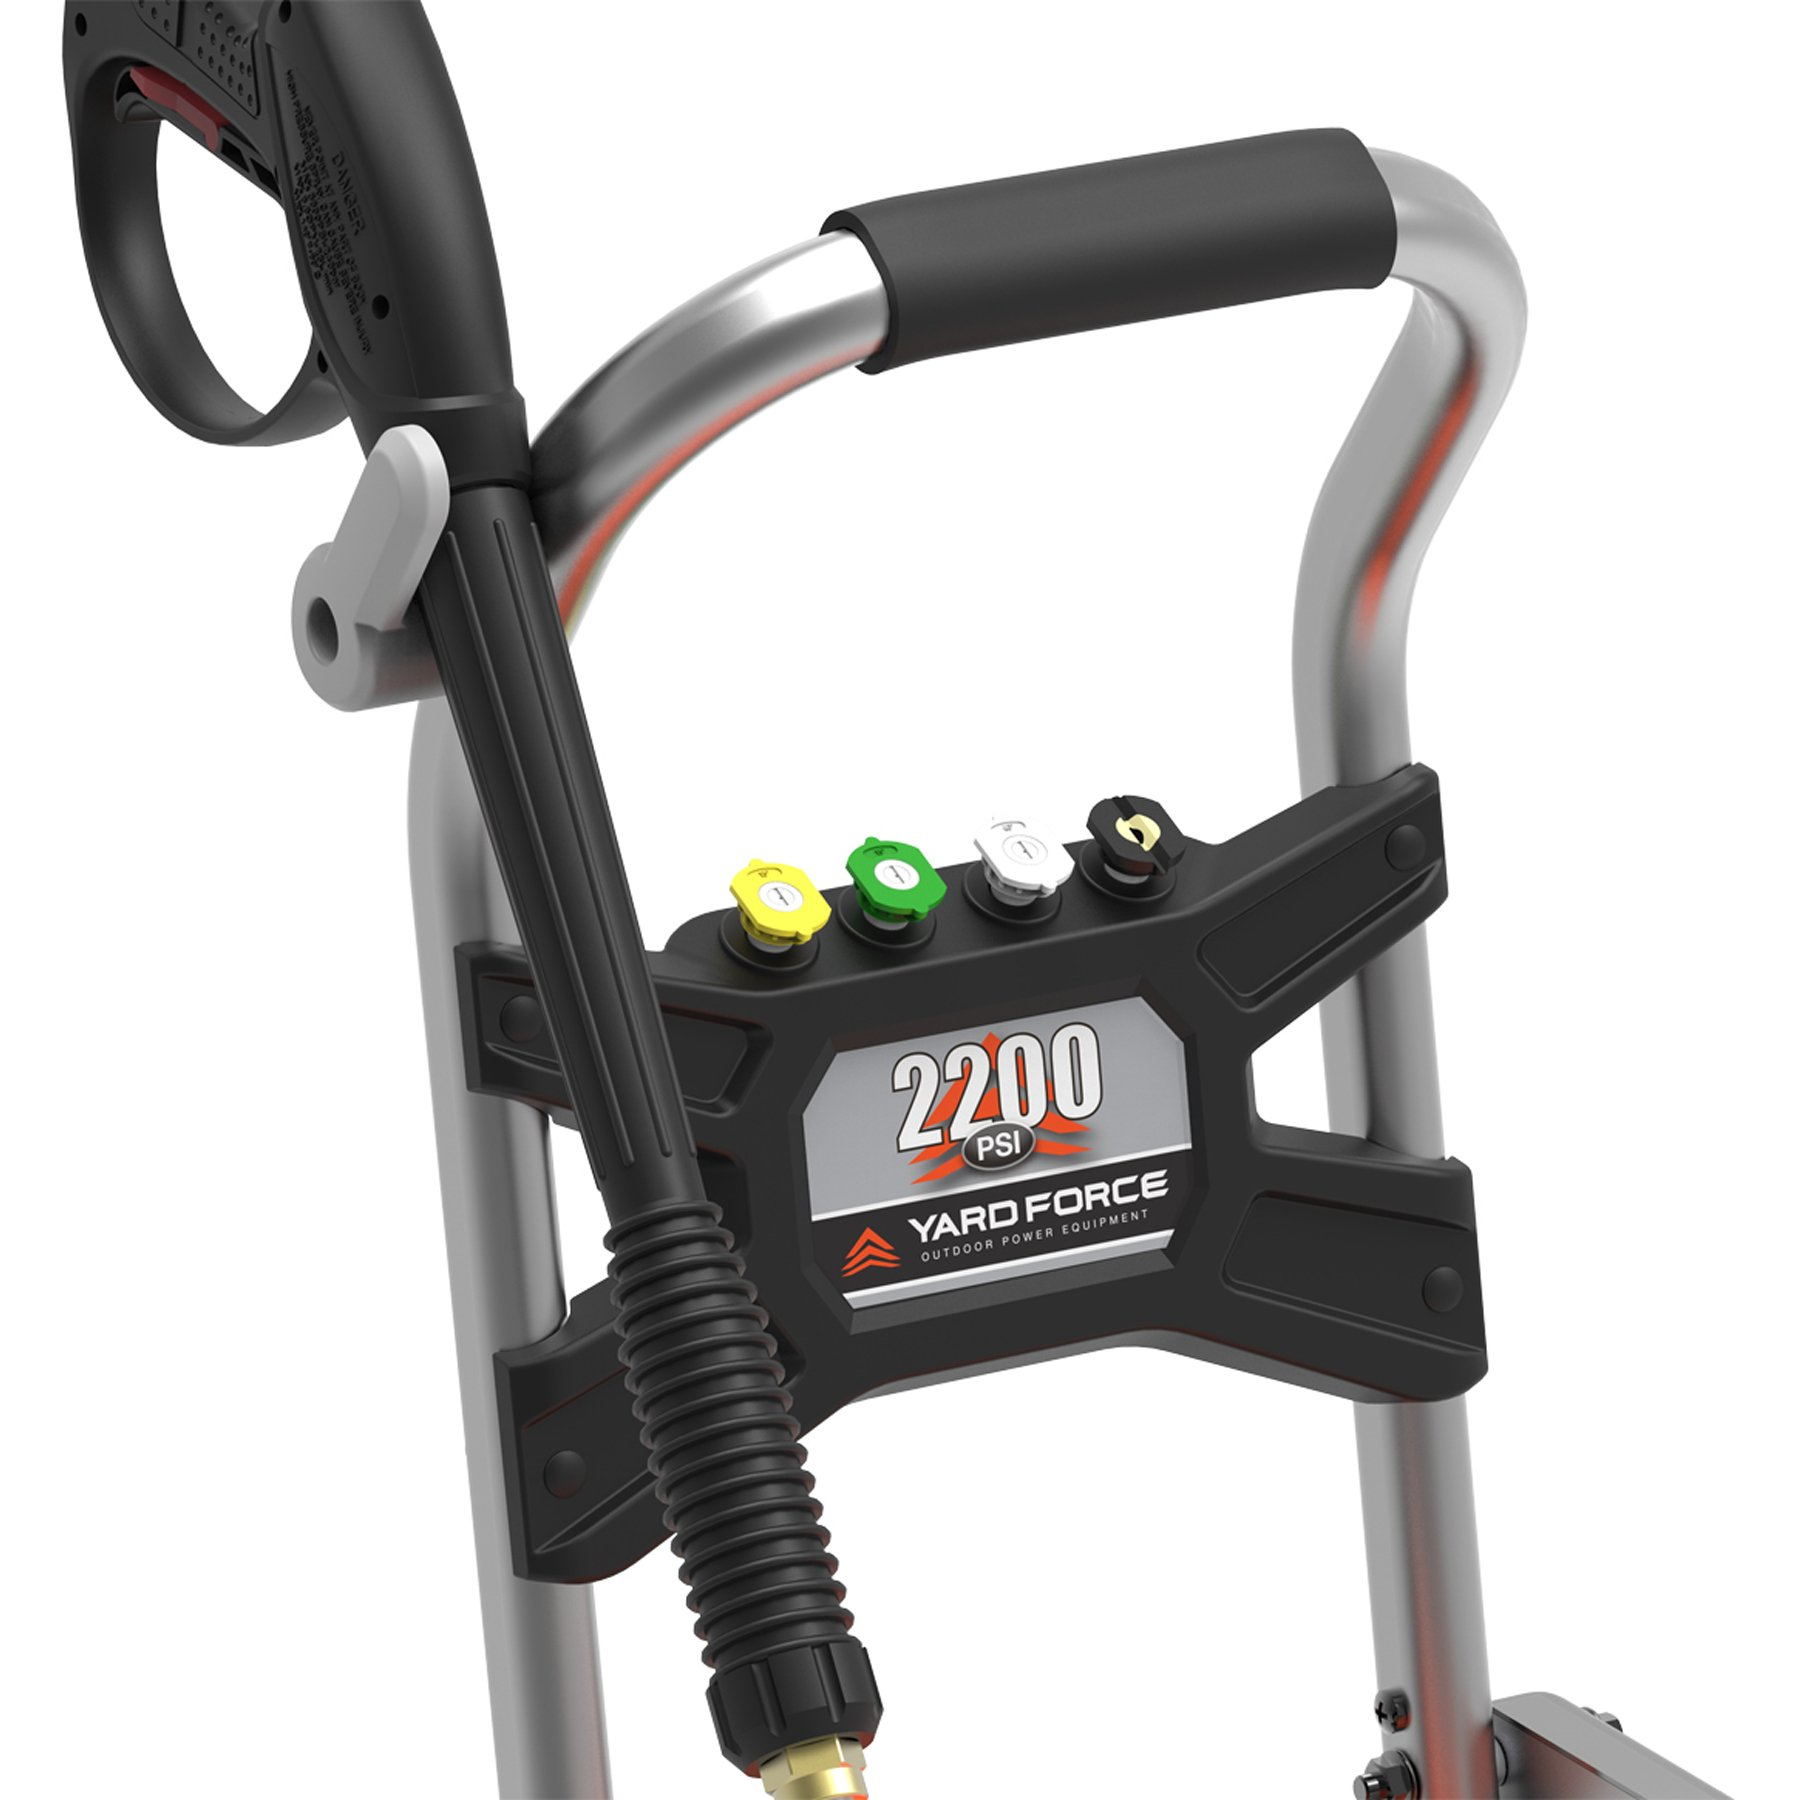 Yard Force YF2200BL Electric Brushless Pressure Washer 2200 PSI by YardForce (Image #5)